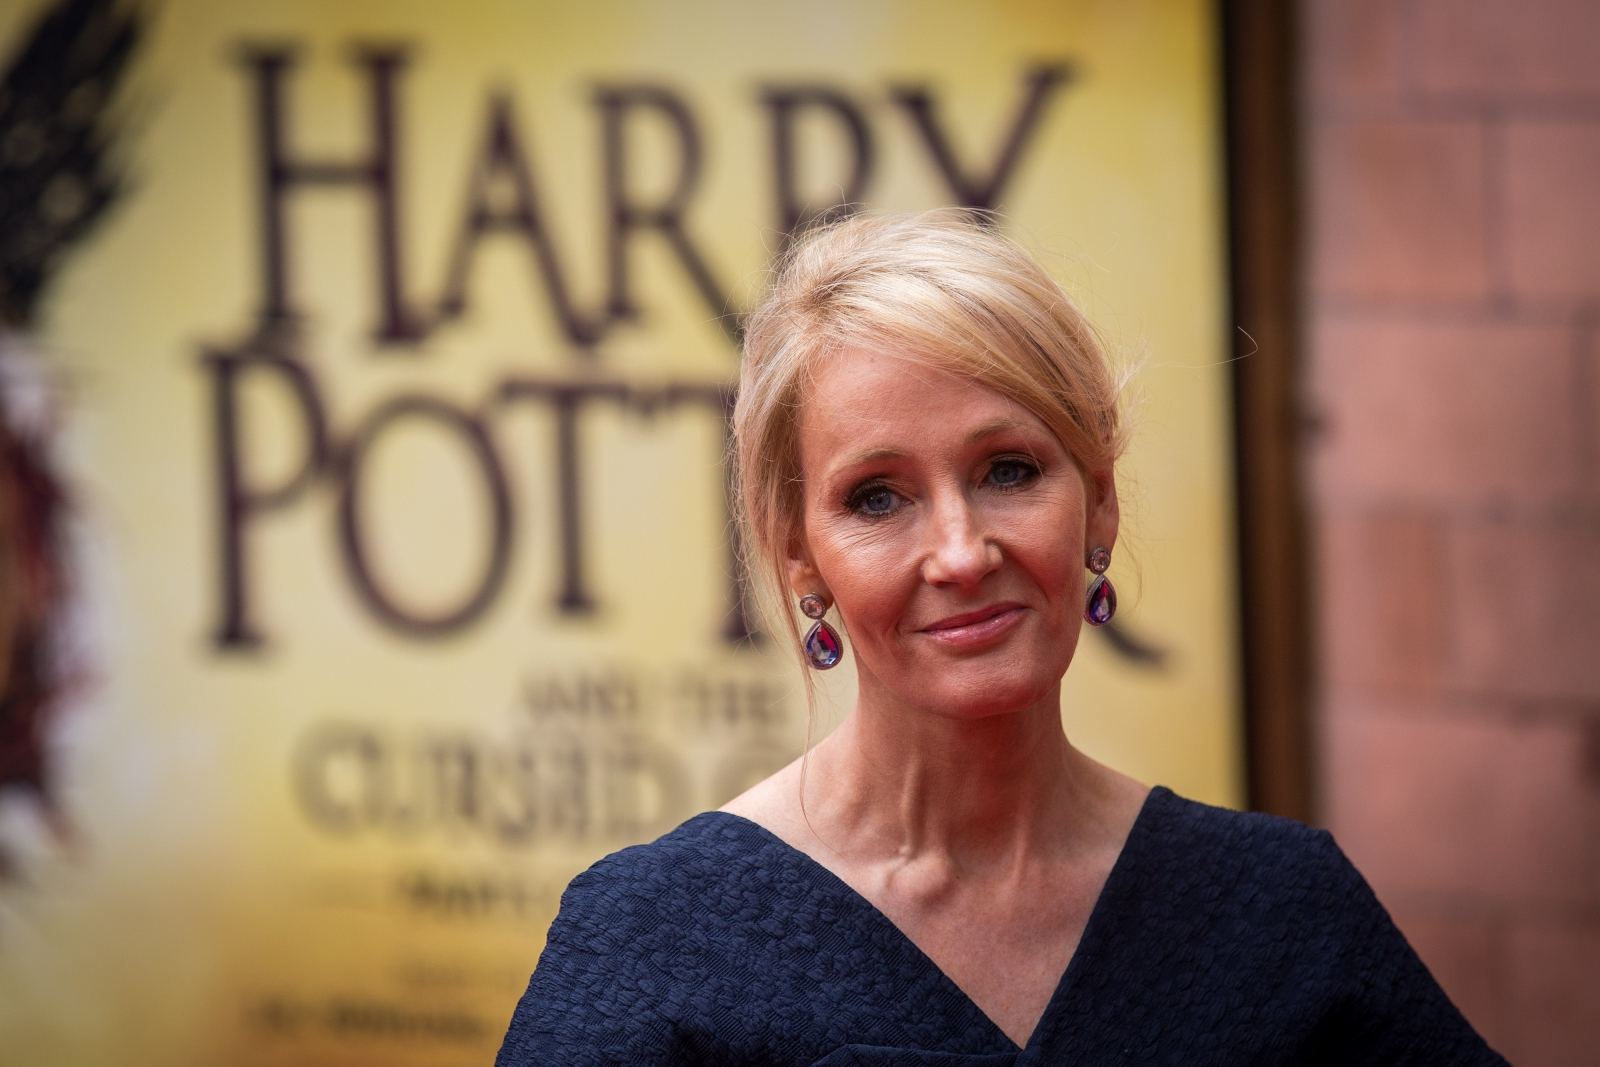 JK Rowling takes aim at former fan over Trump ban comments